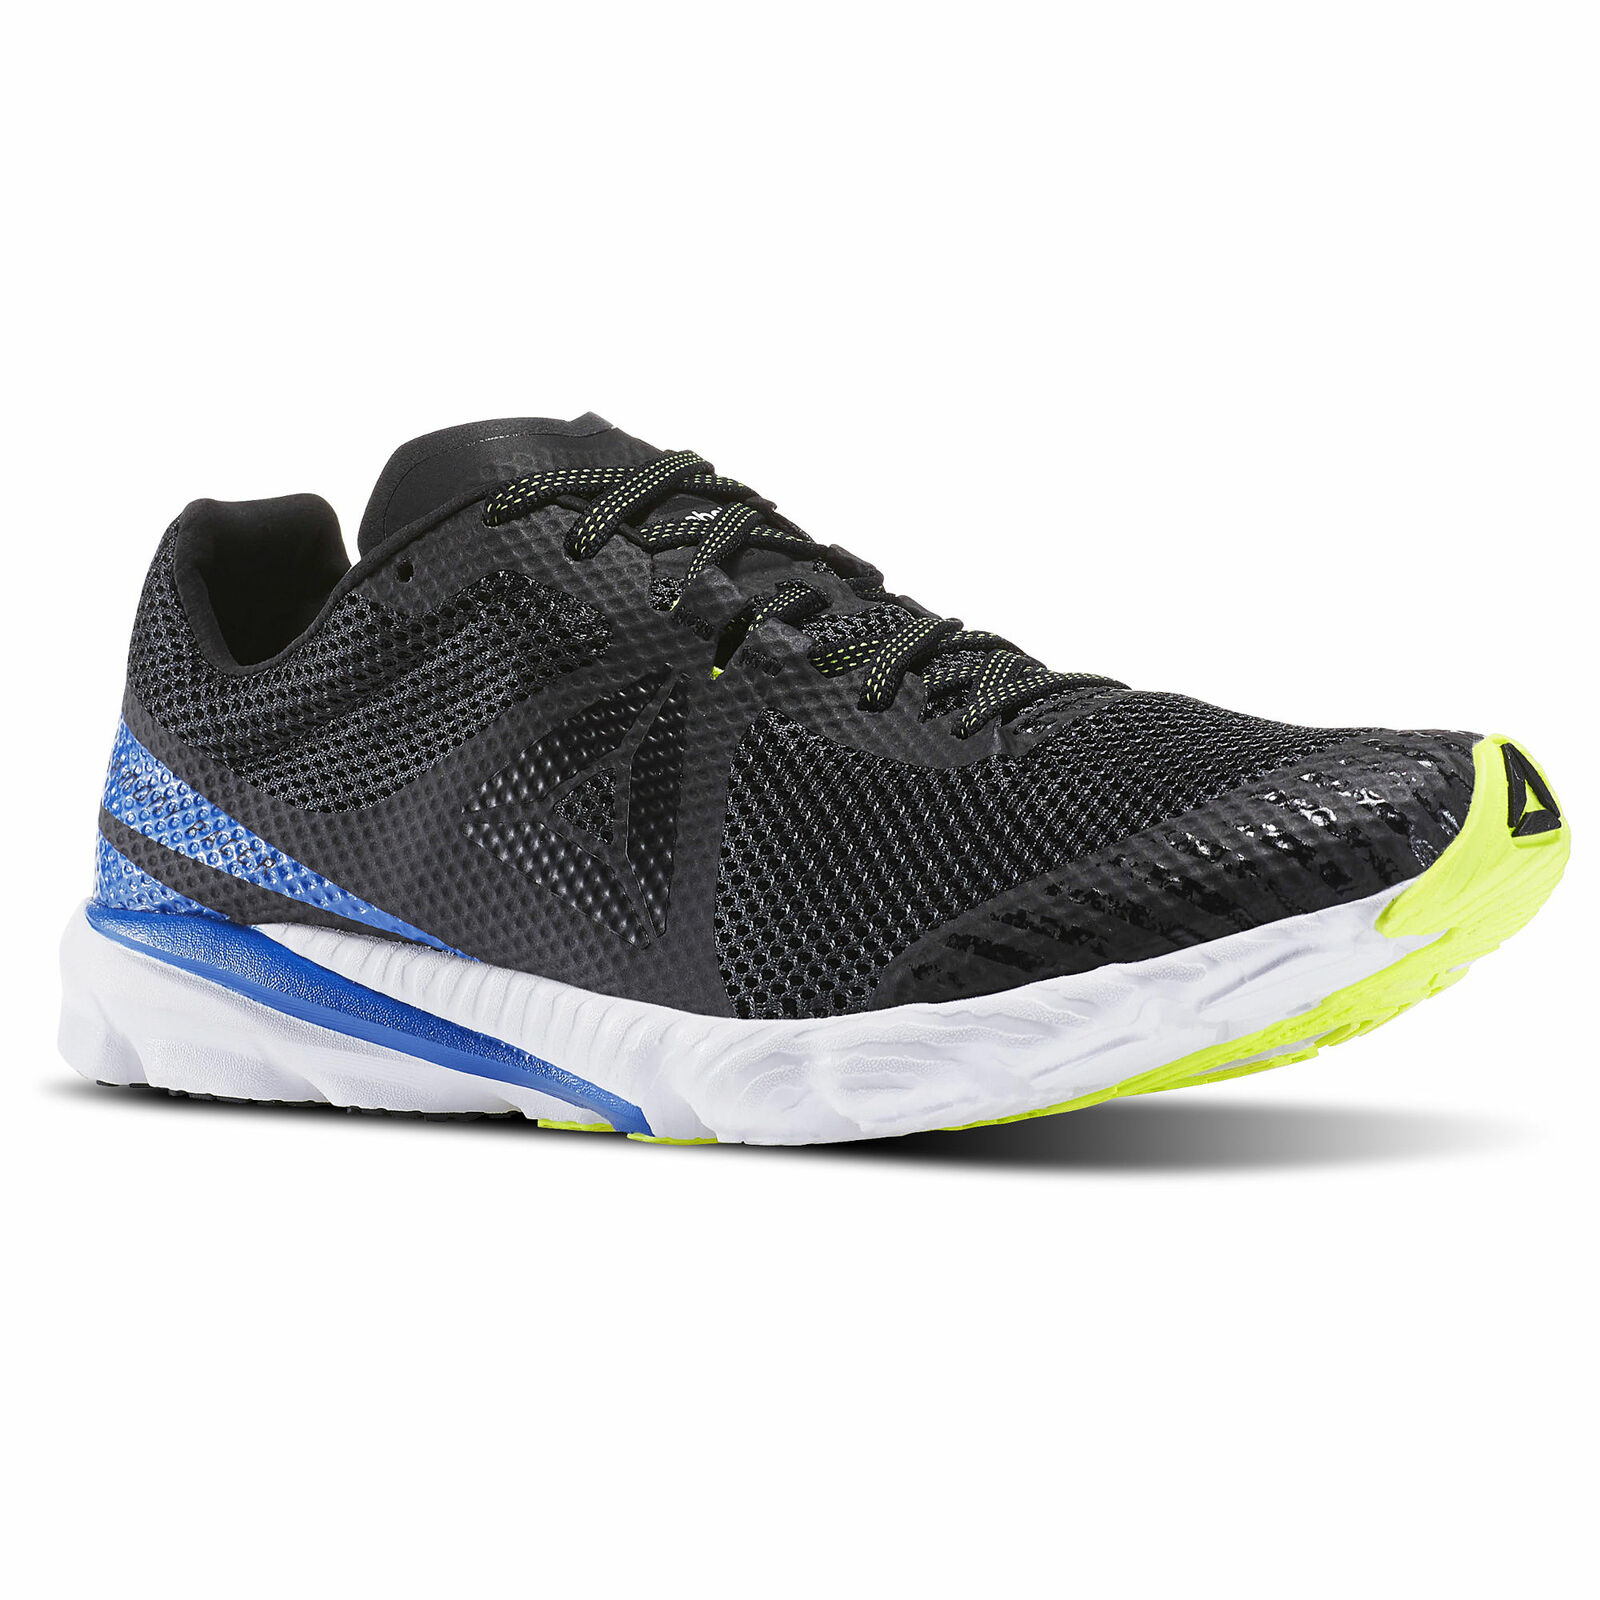 Reebok Men's Harmony Racer shoes